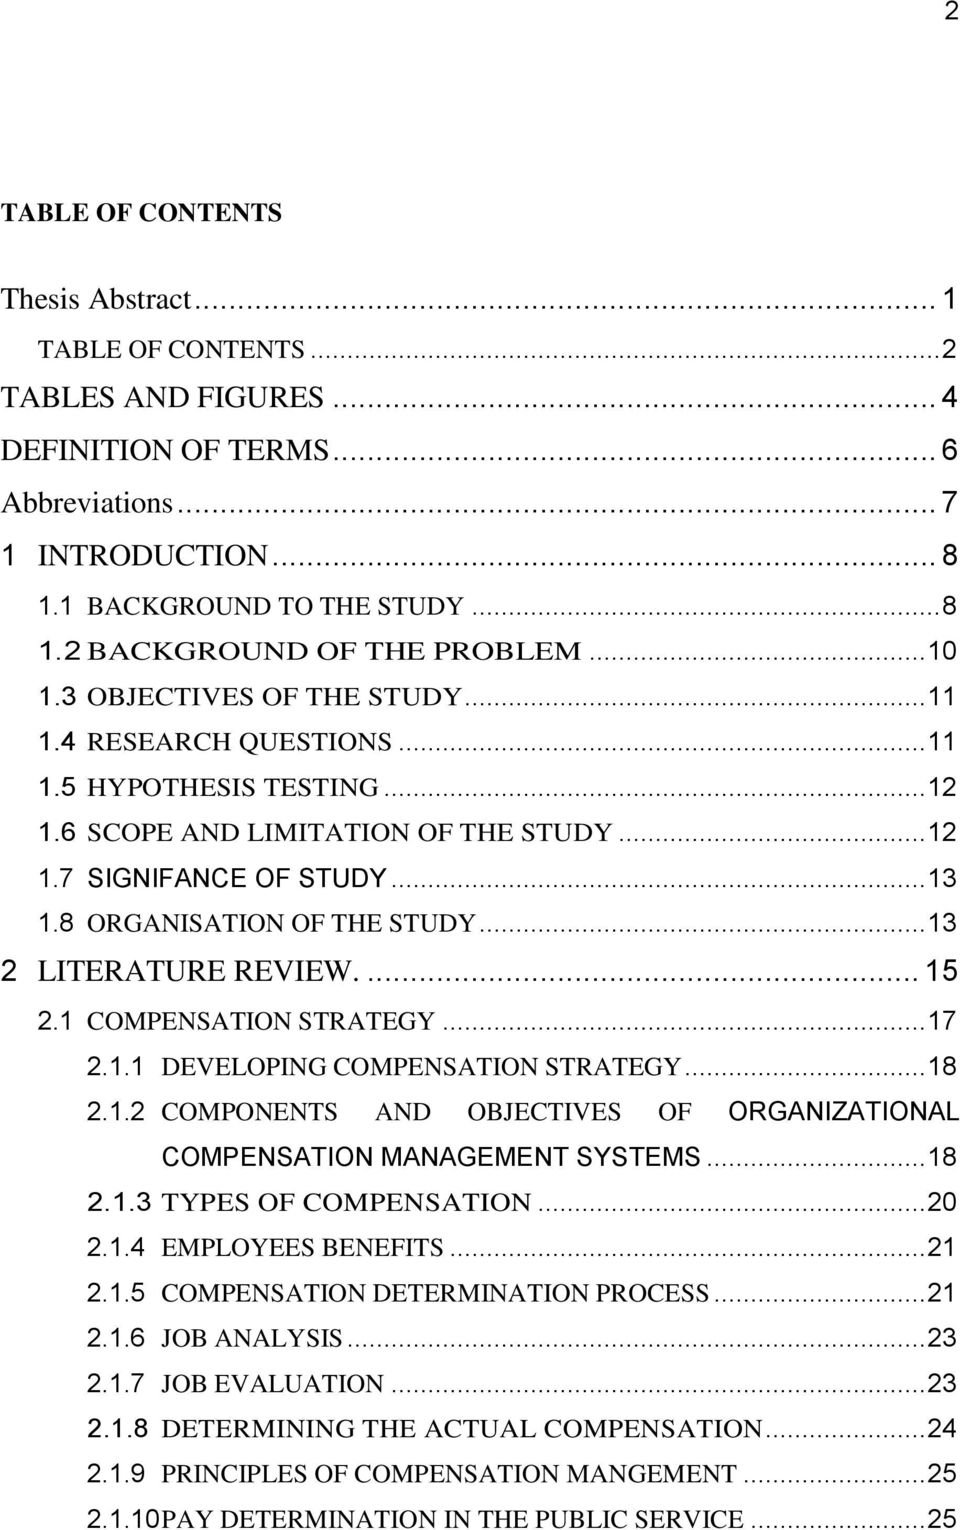 Employee engagement literature review essays